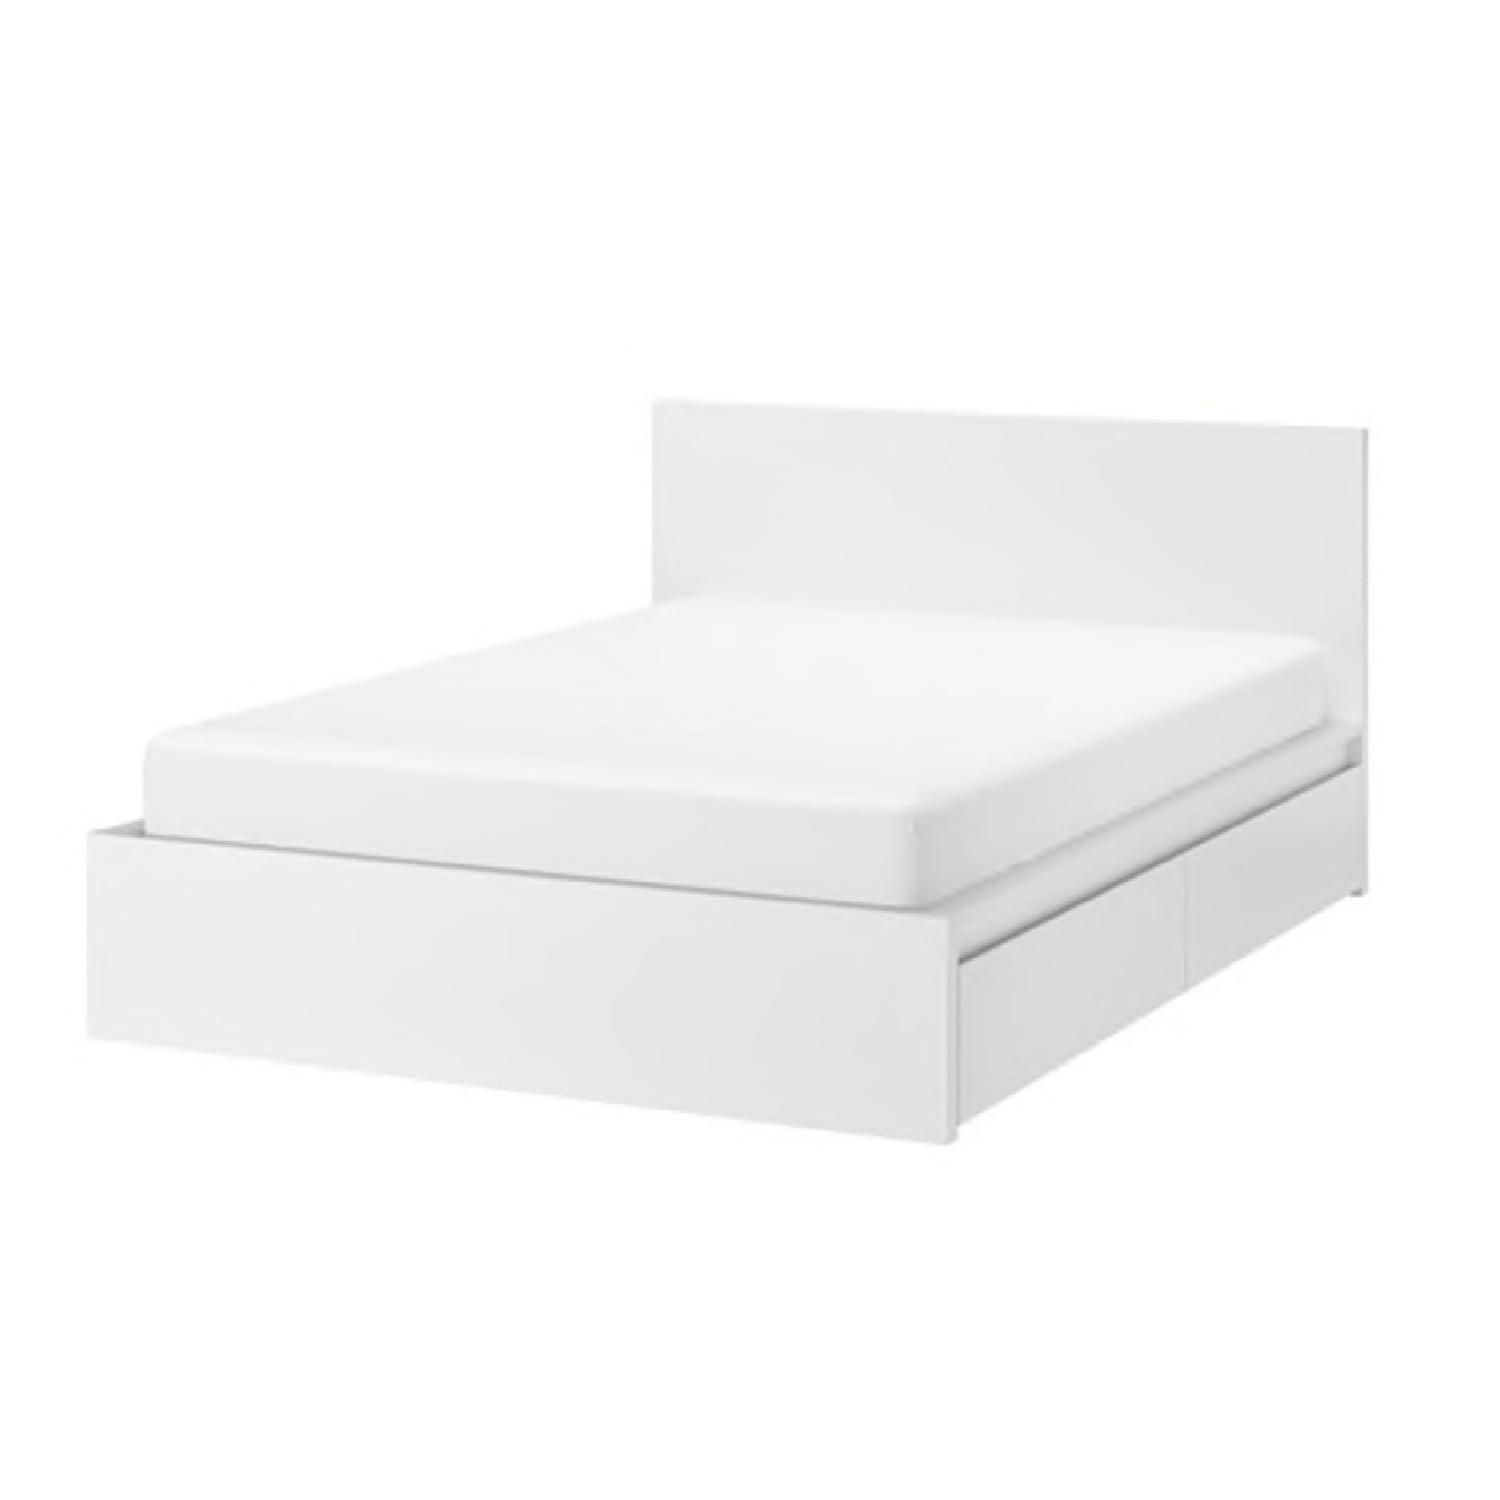 Ikea Malm White Full High Bed Frame w/ 4 Storage Boxes - image-0